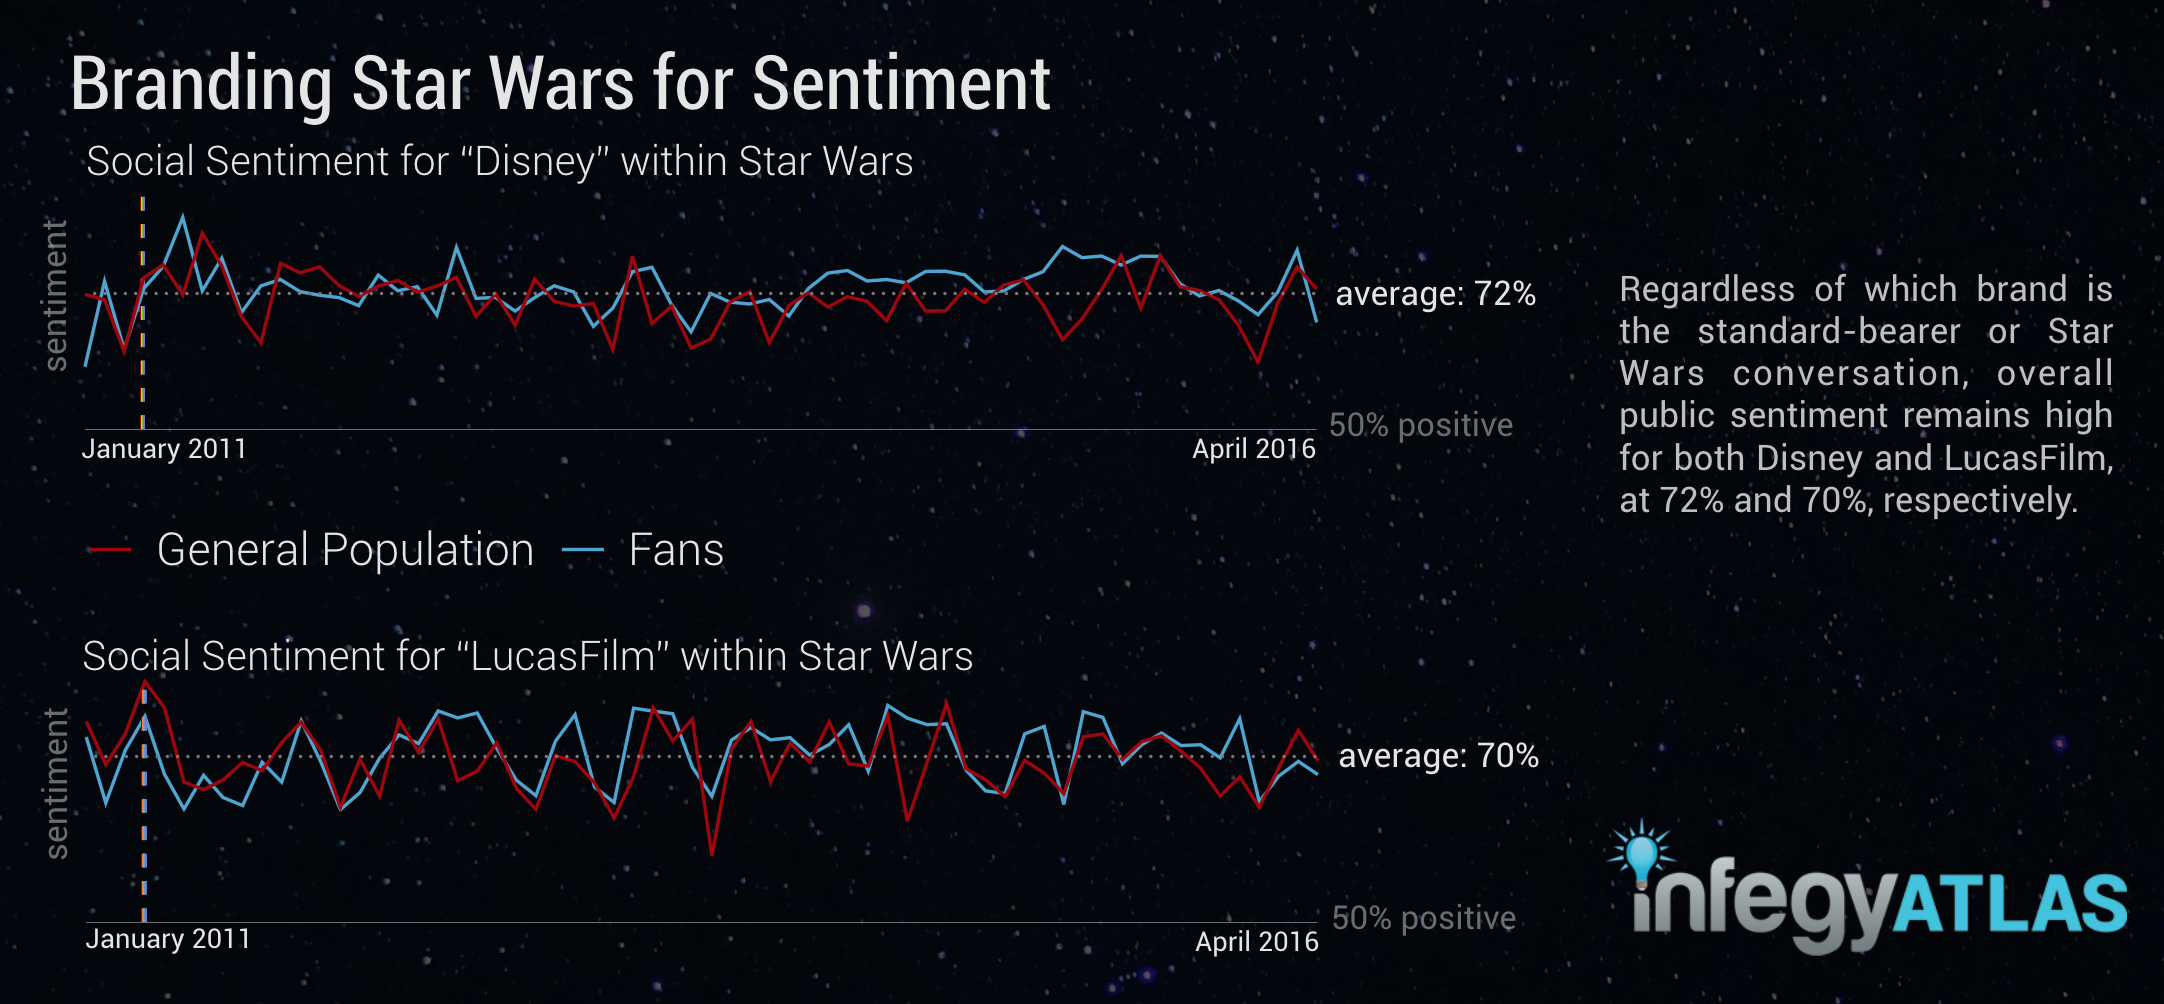 branding-star-wars-for-sentiment.png